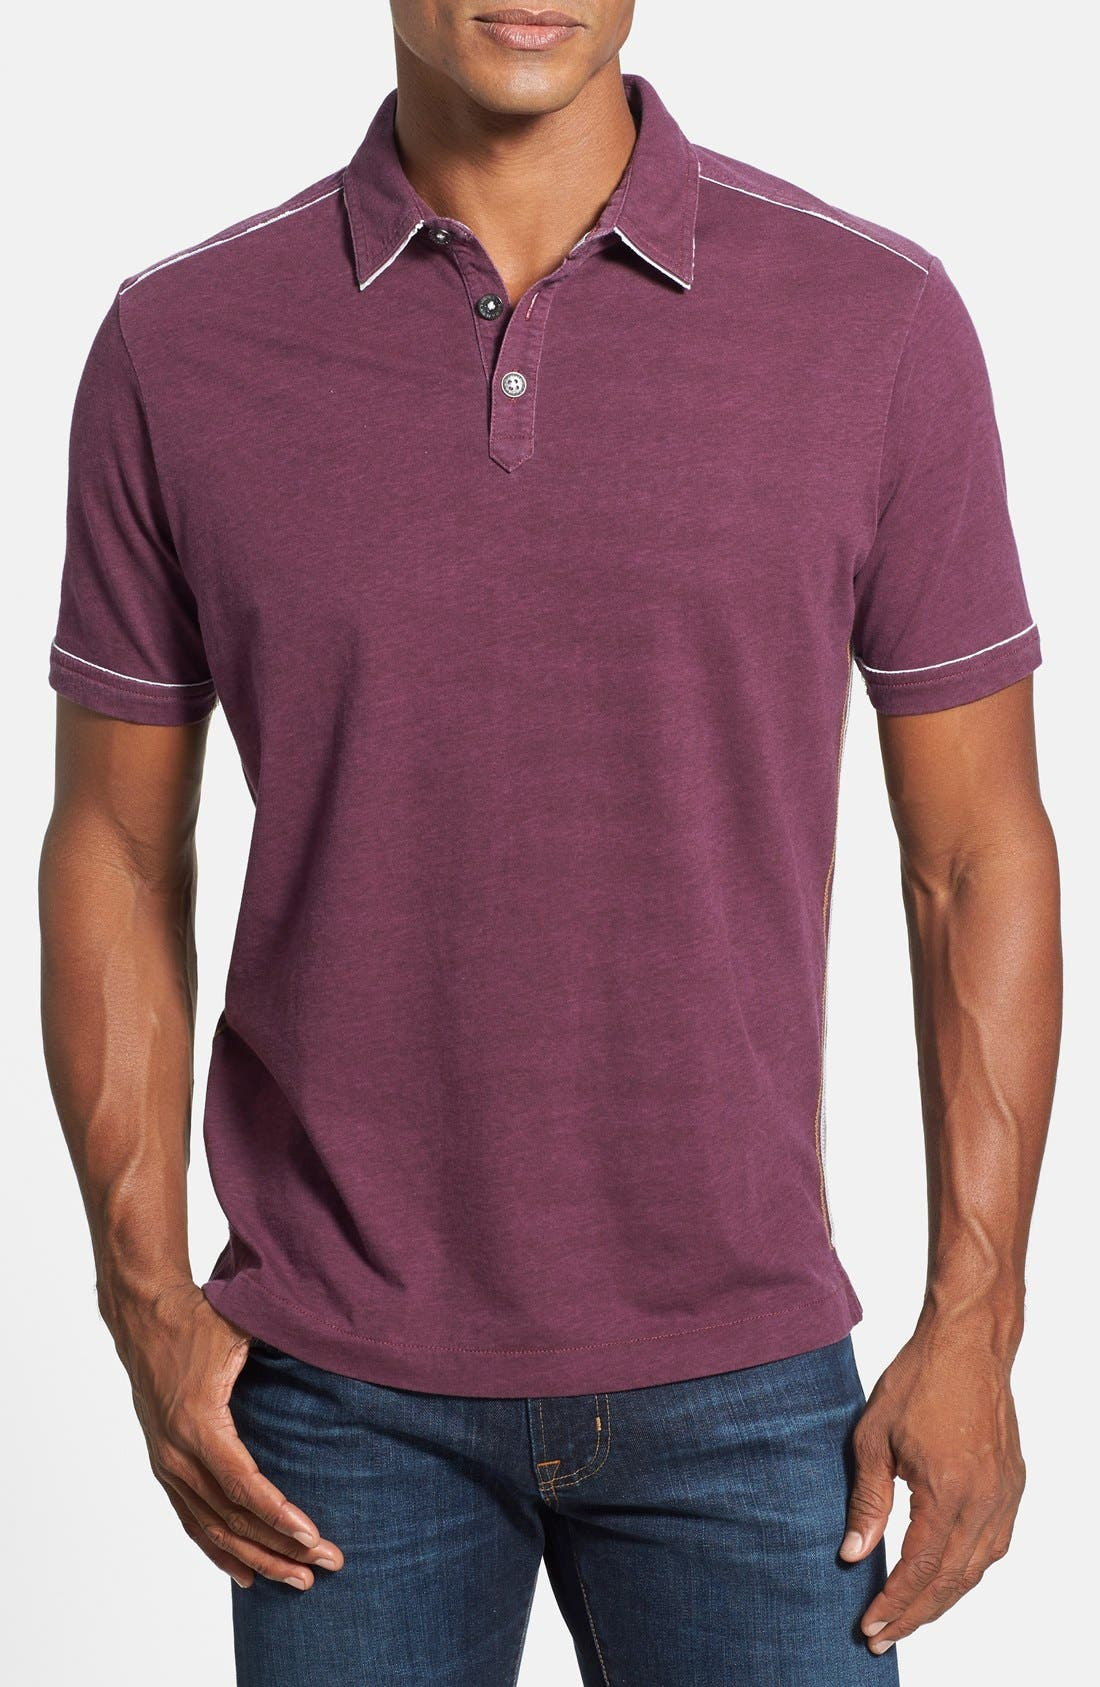 Alternate Image 1 Selected - Tommy Bahama 'New Fray Day' Island Modern Fit Polo